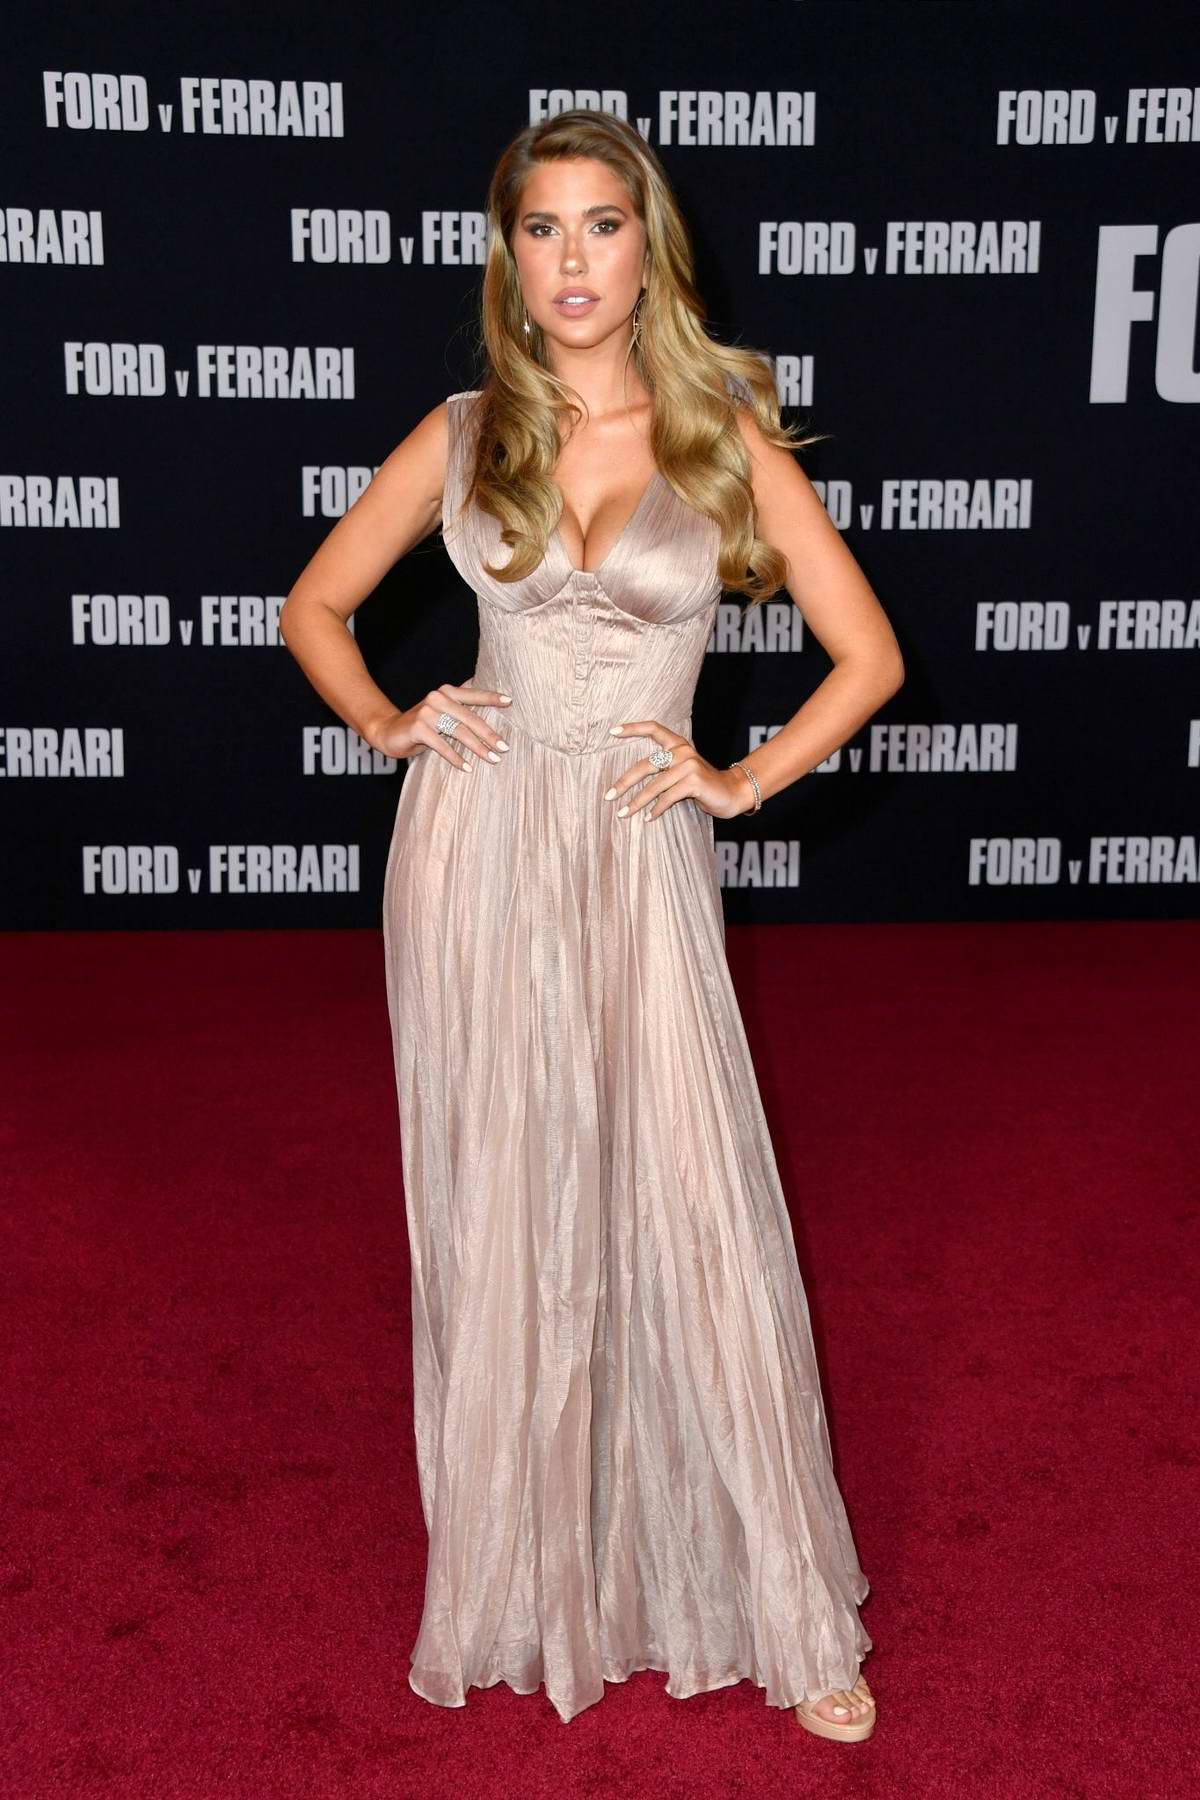 Kara Del Toro attends the Premiere of Ford v Ferrari at the TCL Chinese Theater in Los Angeles